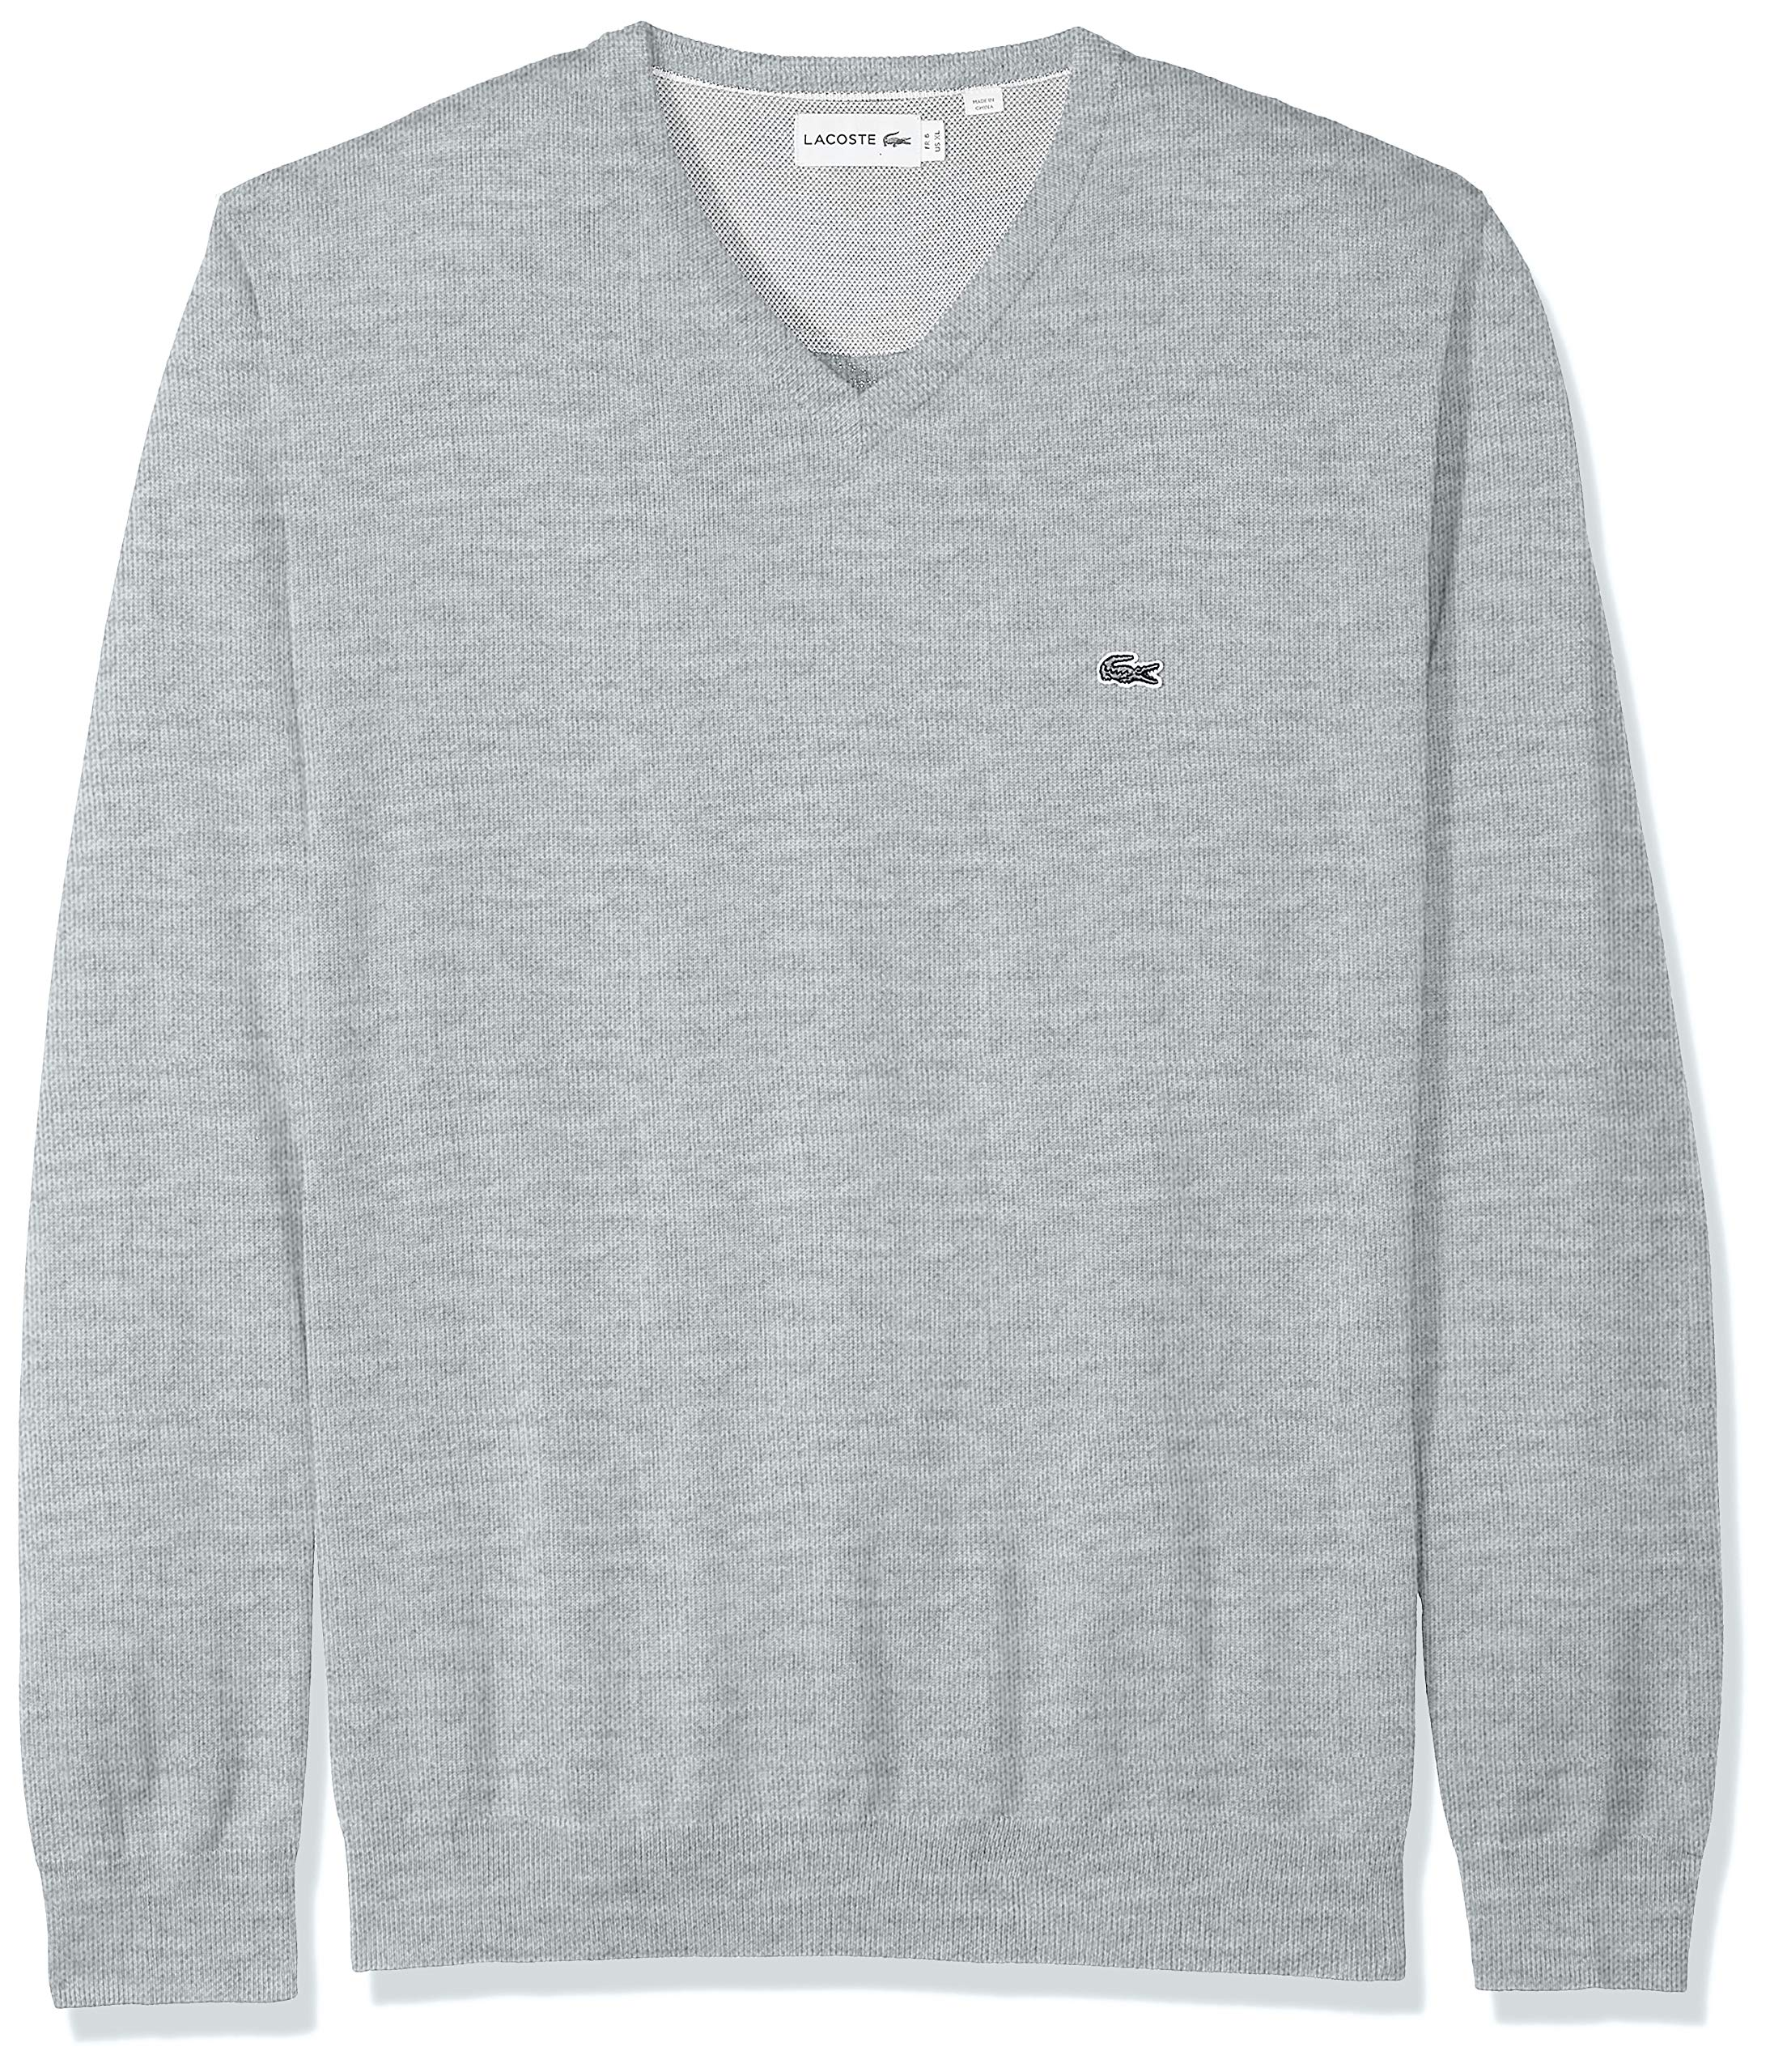 Lacoste Men's Long Sleeve Half Moon V Neck Jersey Sweater, PLUVIER Chine/Flour/Silver, Large